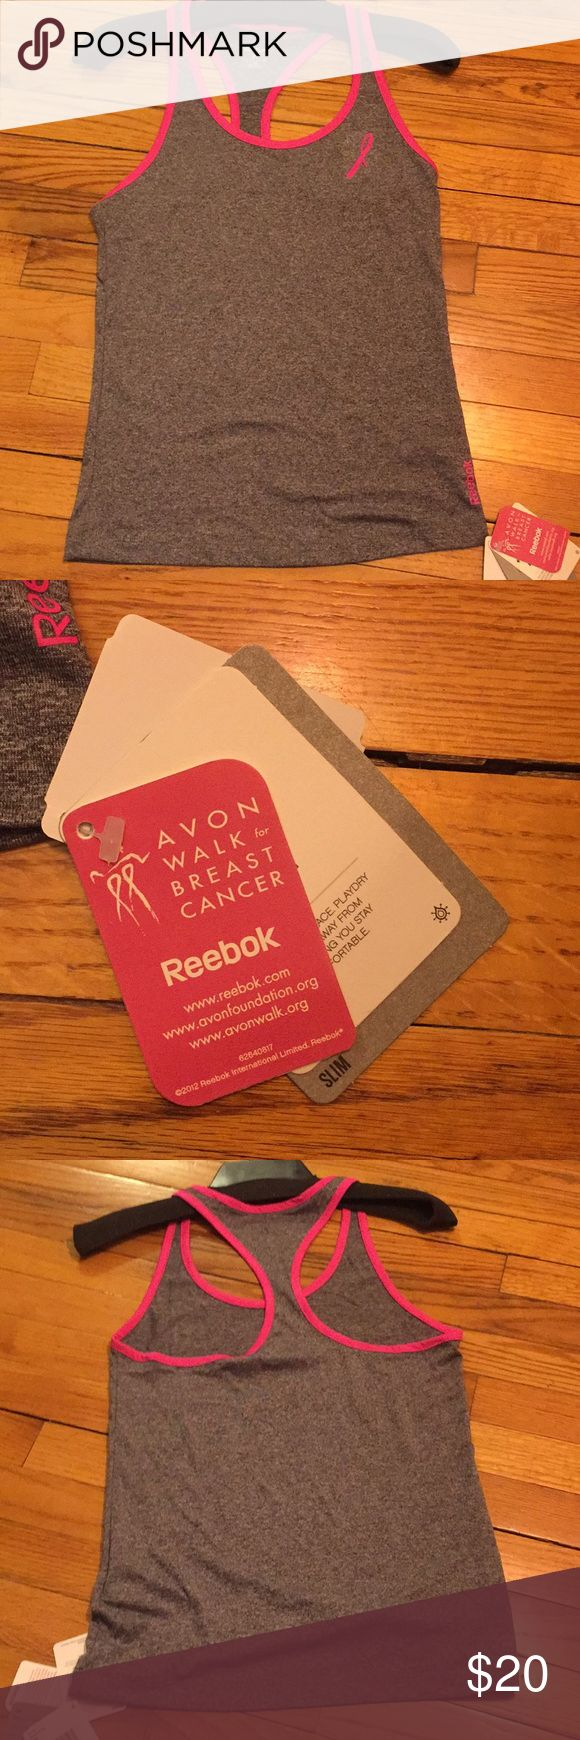 Reebok Avon Breast Cancer Walk Tank. Size XS- Grey NWT Grey Avon Walk for Breast Cancer Tank. Light and breathable with slim fit. Perfect for running, walking or any workout. Reebok Tops Tank Tops